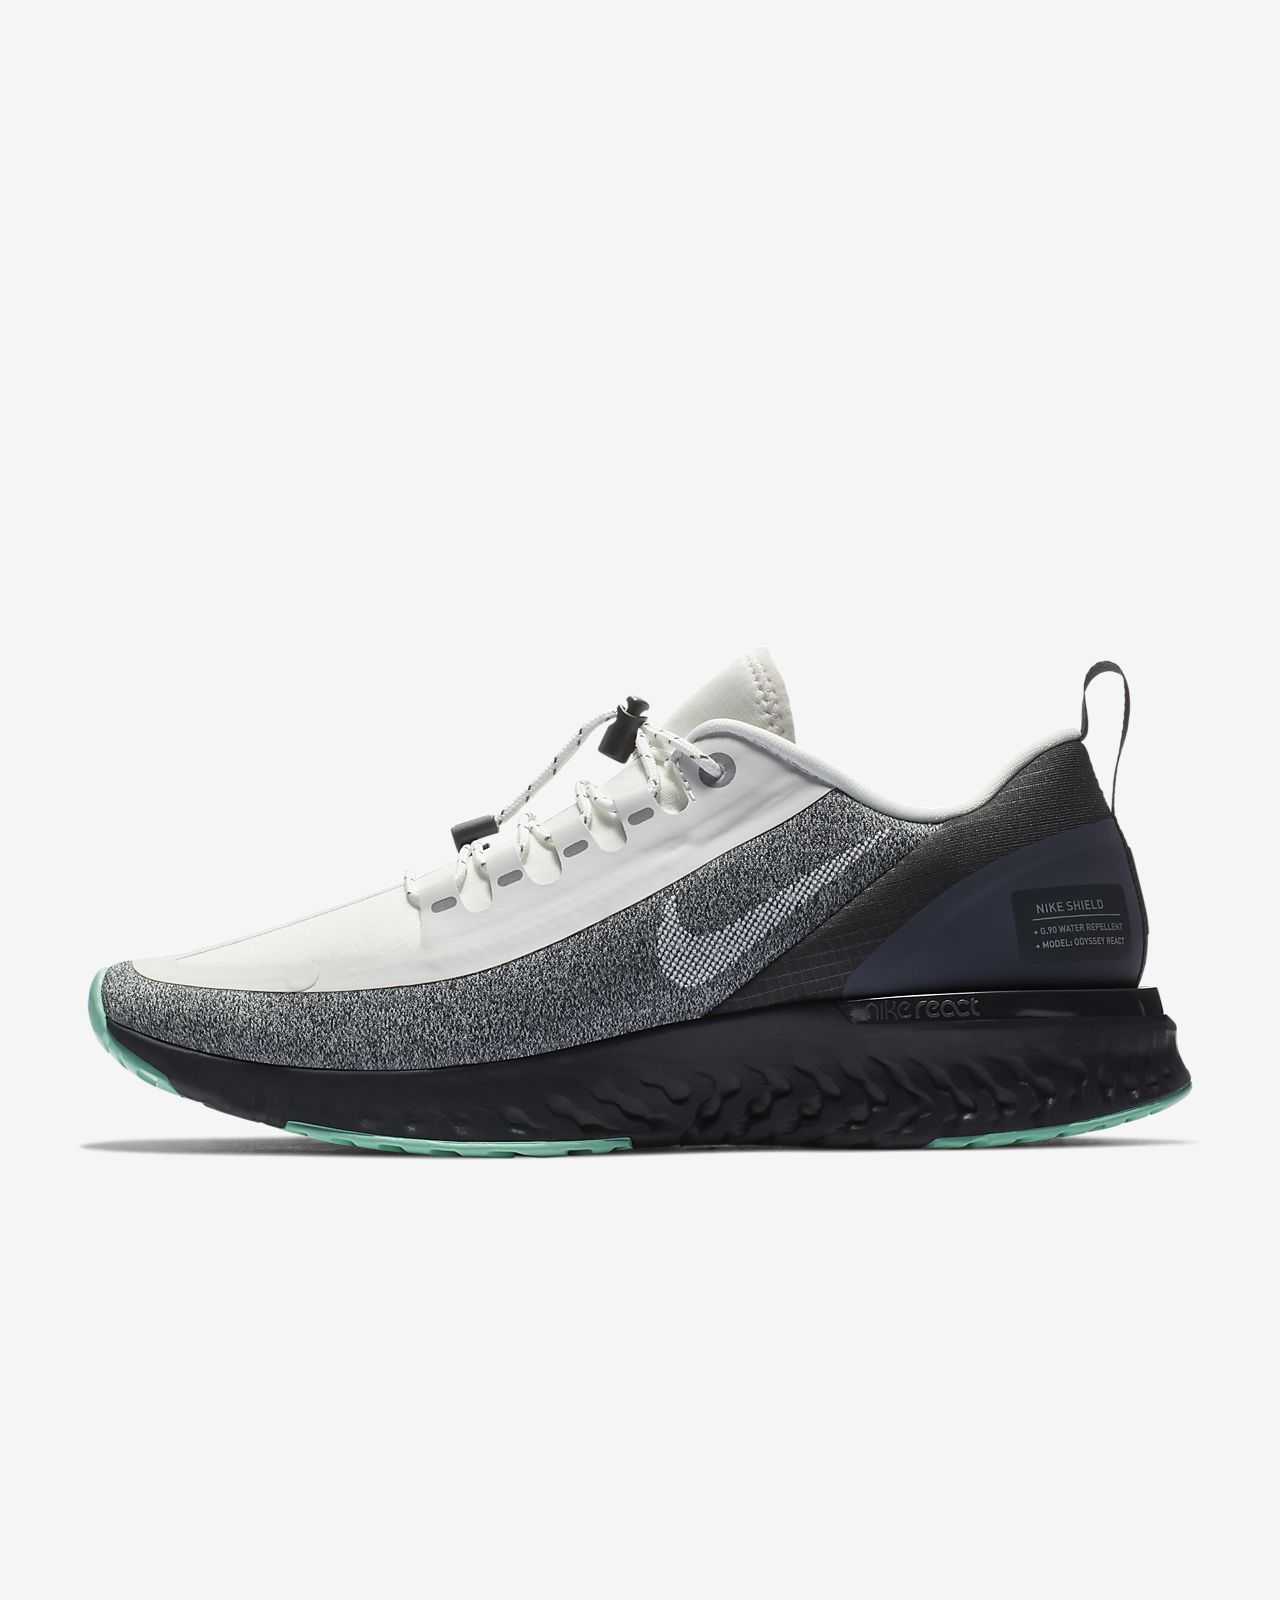 Shield Pour React Odyssey Repellent De Running Chaussure Nike Femme Water wXHFFf